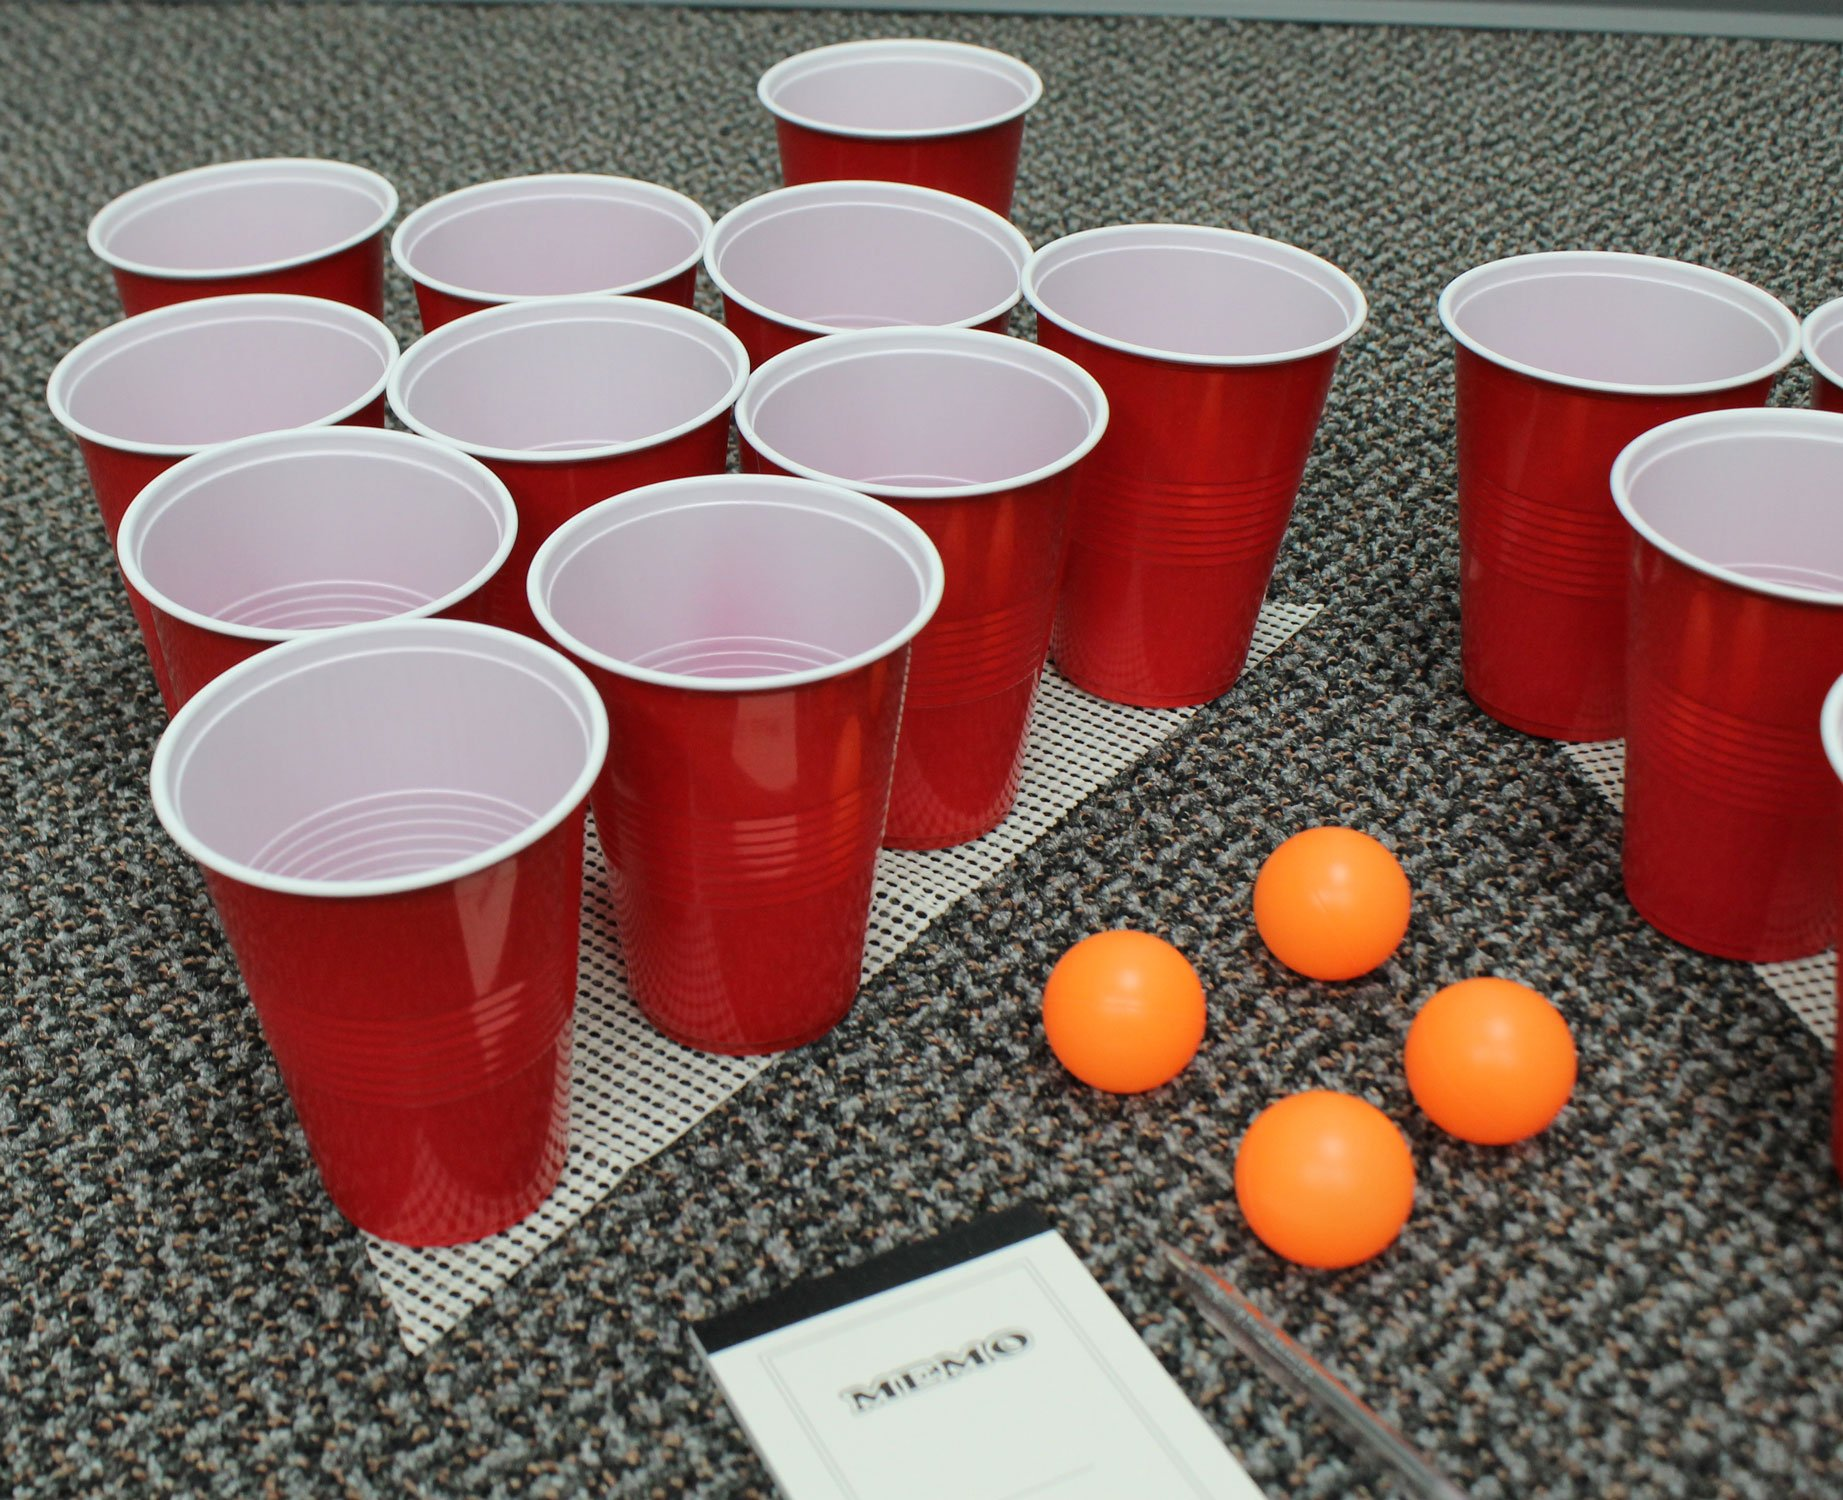 Perfect Life Ideas 30 Pc Beer Pong Set Cool Fun Beer Drinking Party Game to Play for Adults College Students - Includes Cups, Balls, Game Anti Skid Mat More